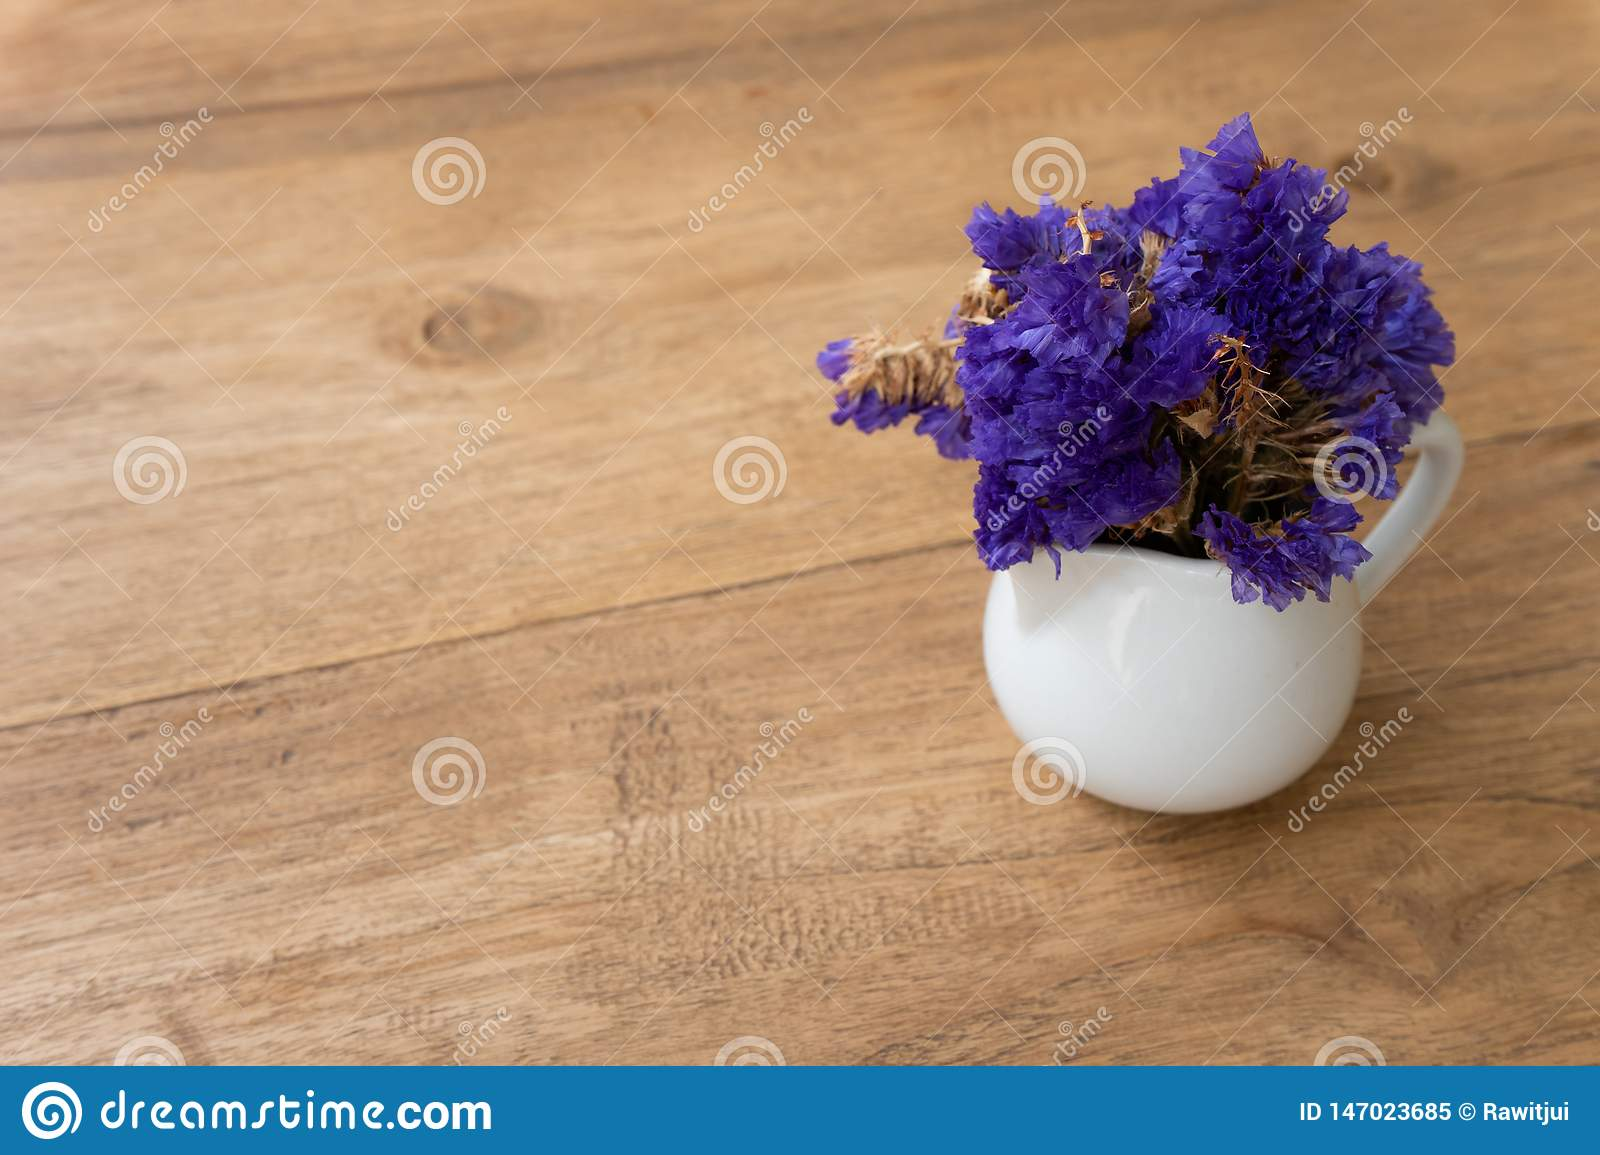 Small violet flower in a white cup on a wooden table